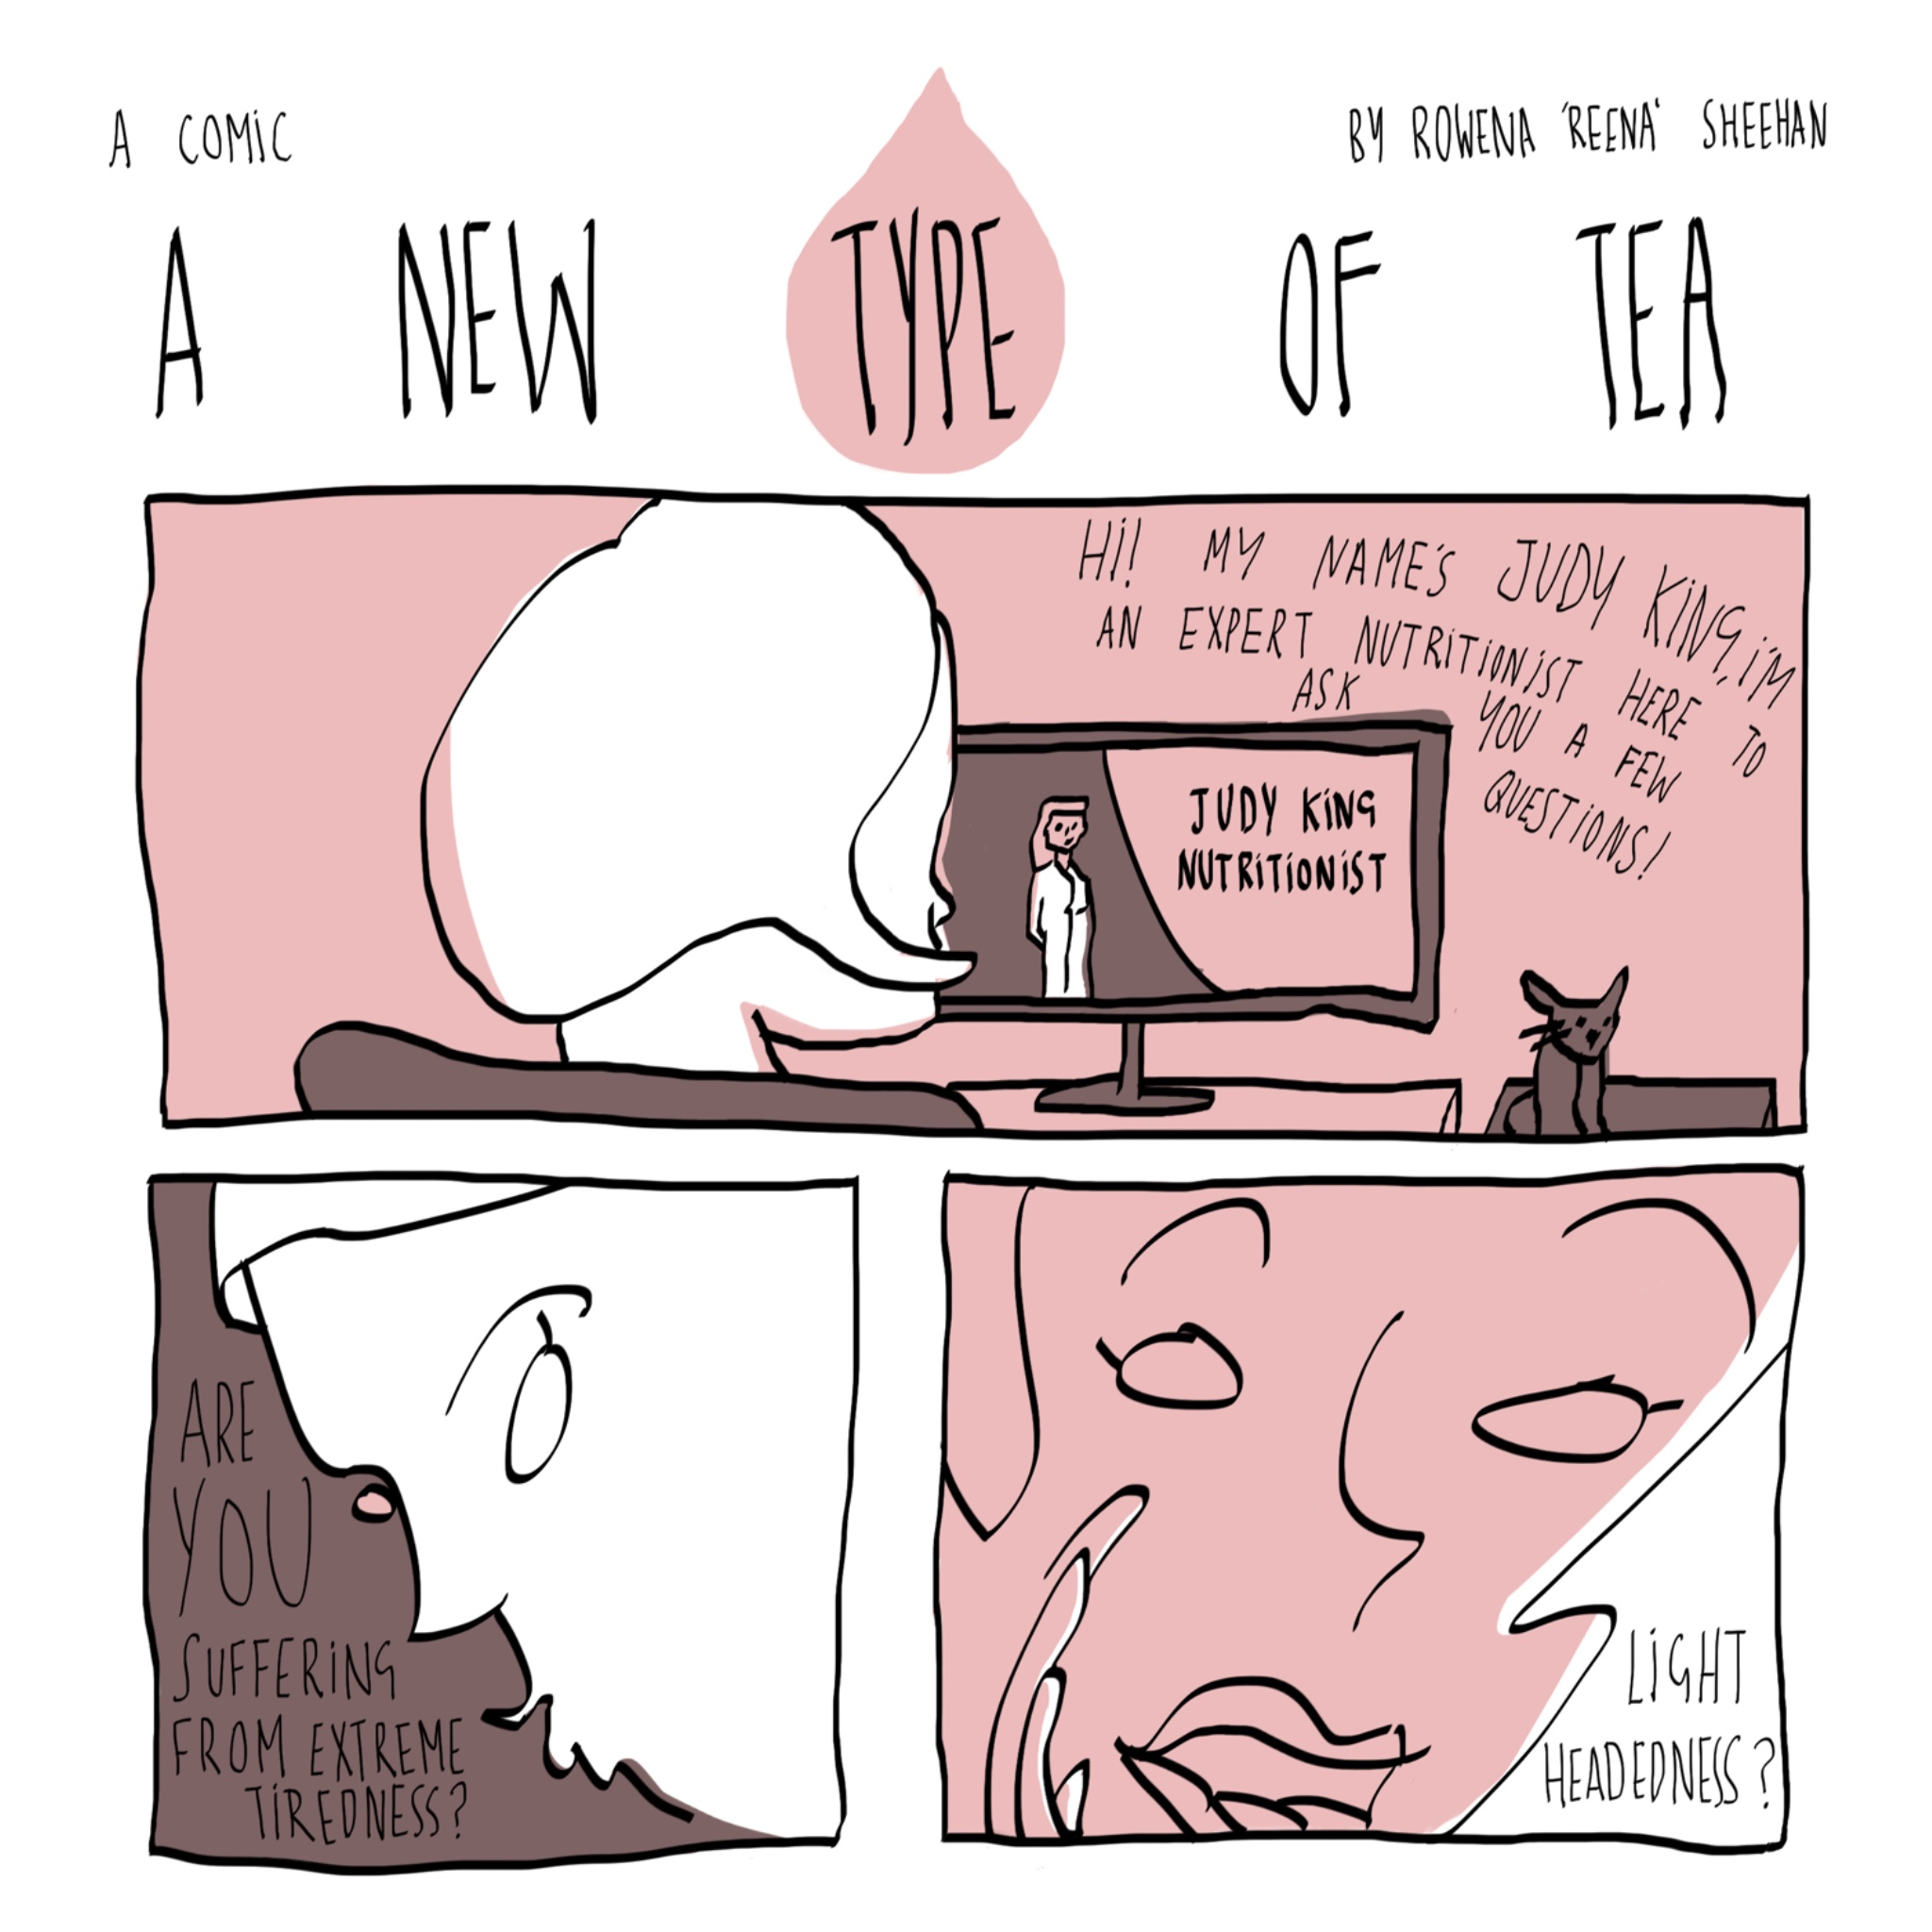 Nonsensicle and absurd comics about a brand new type of tea. comic by Rowena Sheehan